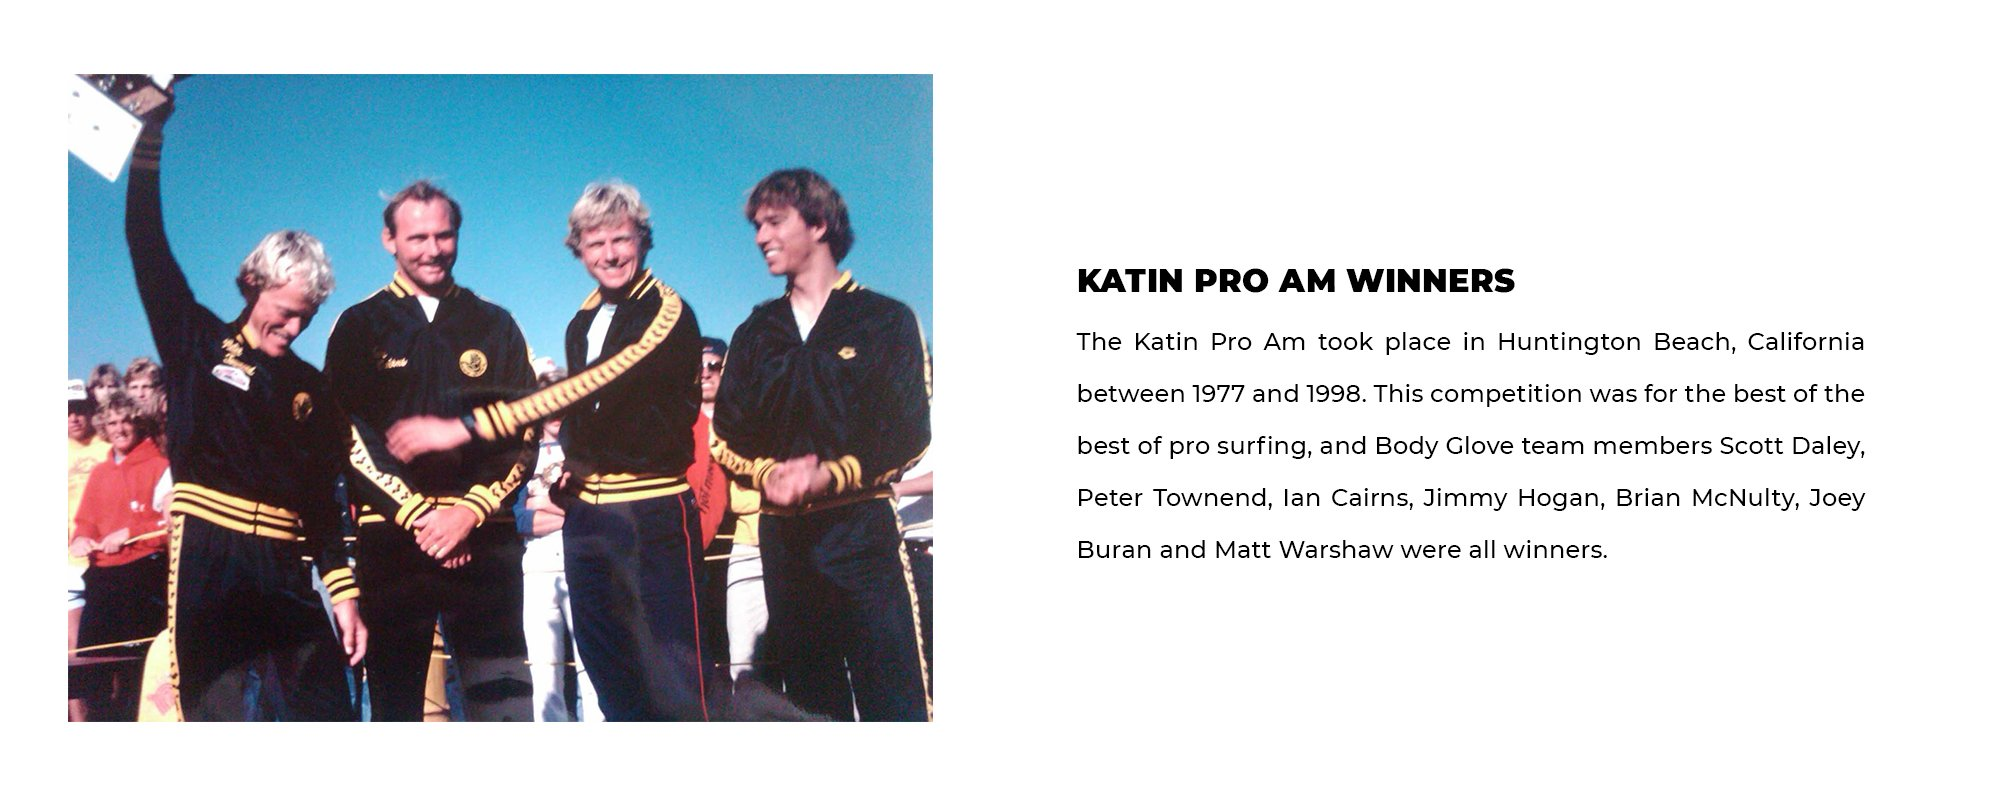 Katin Pro Am Winners | The Katin Pro Am took place in Huntington Beach, California between 1977 and 1998. This competition was for the best of the best of pro surfing, and Body Glove team members Scott Daley, Peter Townend, Ian Cairns, Jimmy Hogan, Brian McNulty, Joey Buran and Matt Warshaw were all winners.